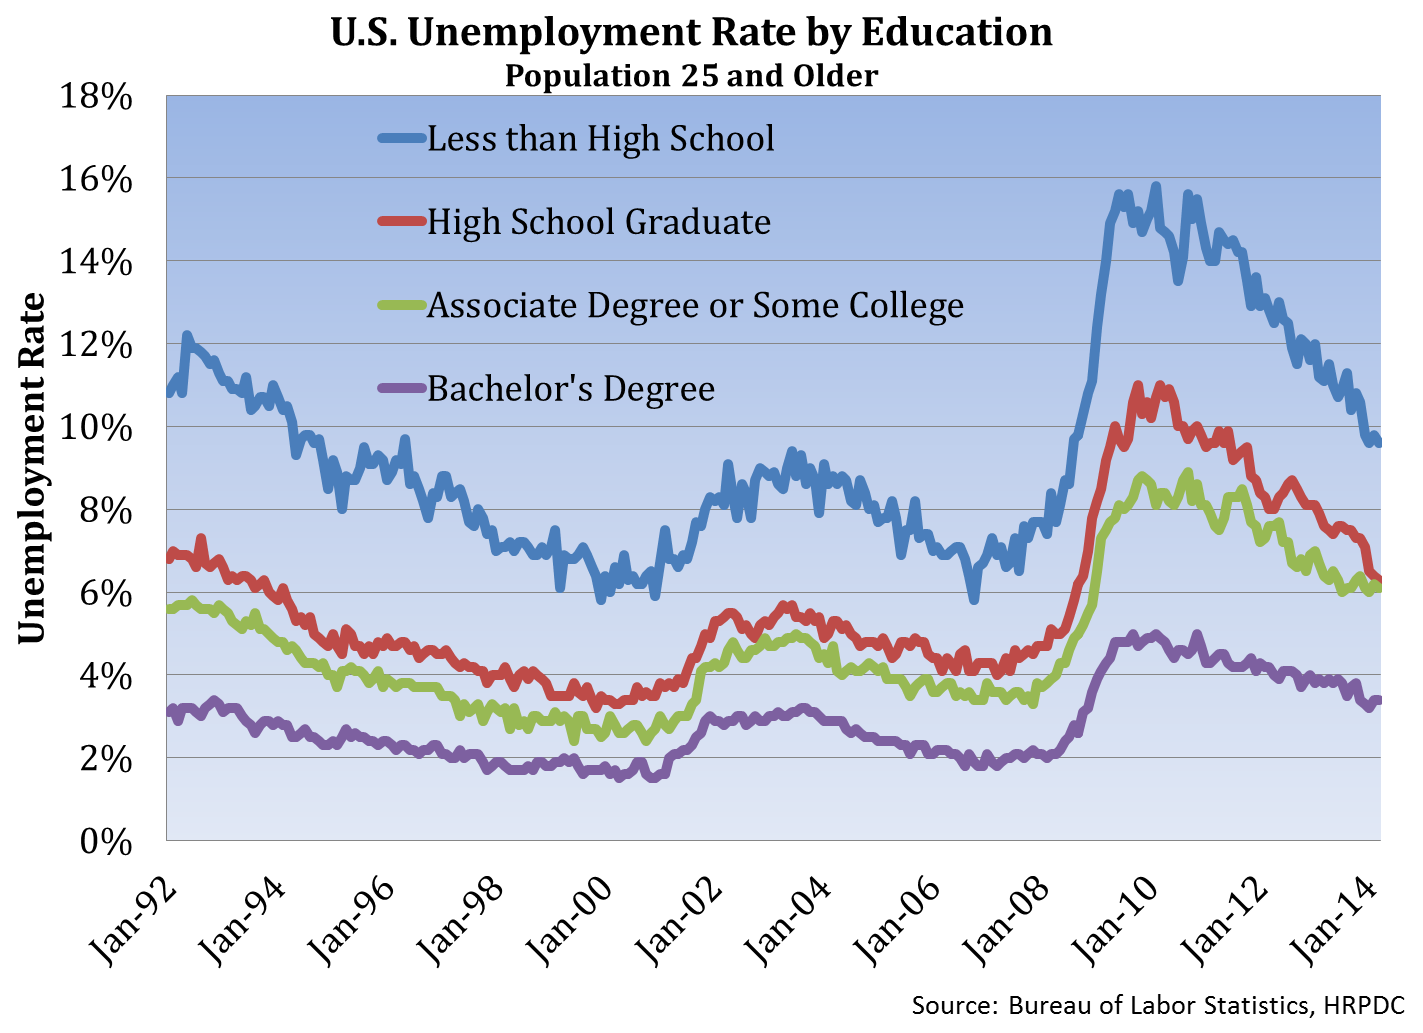 U.S. Unemployment Rate by Education